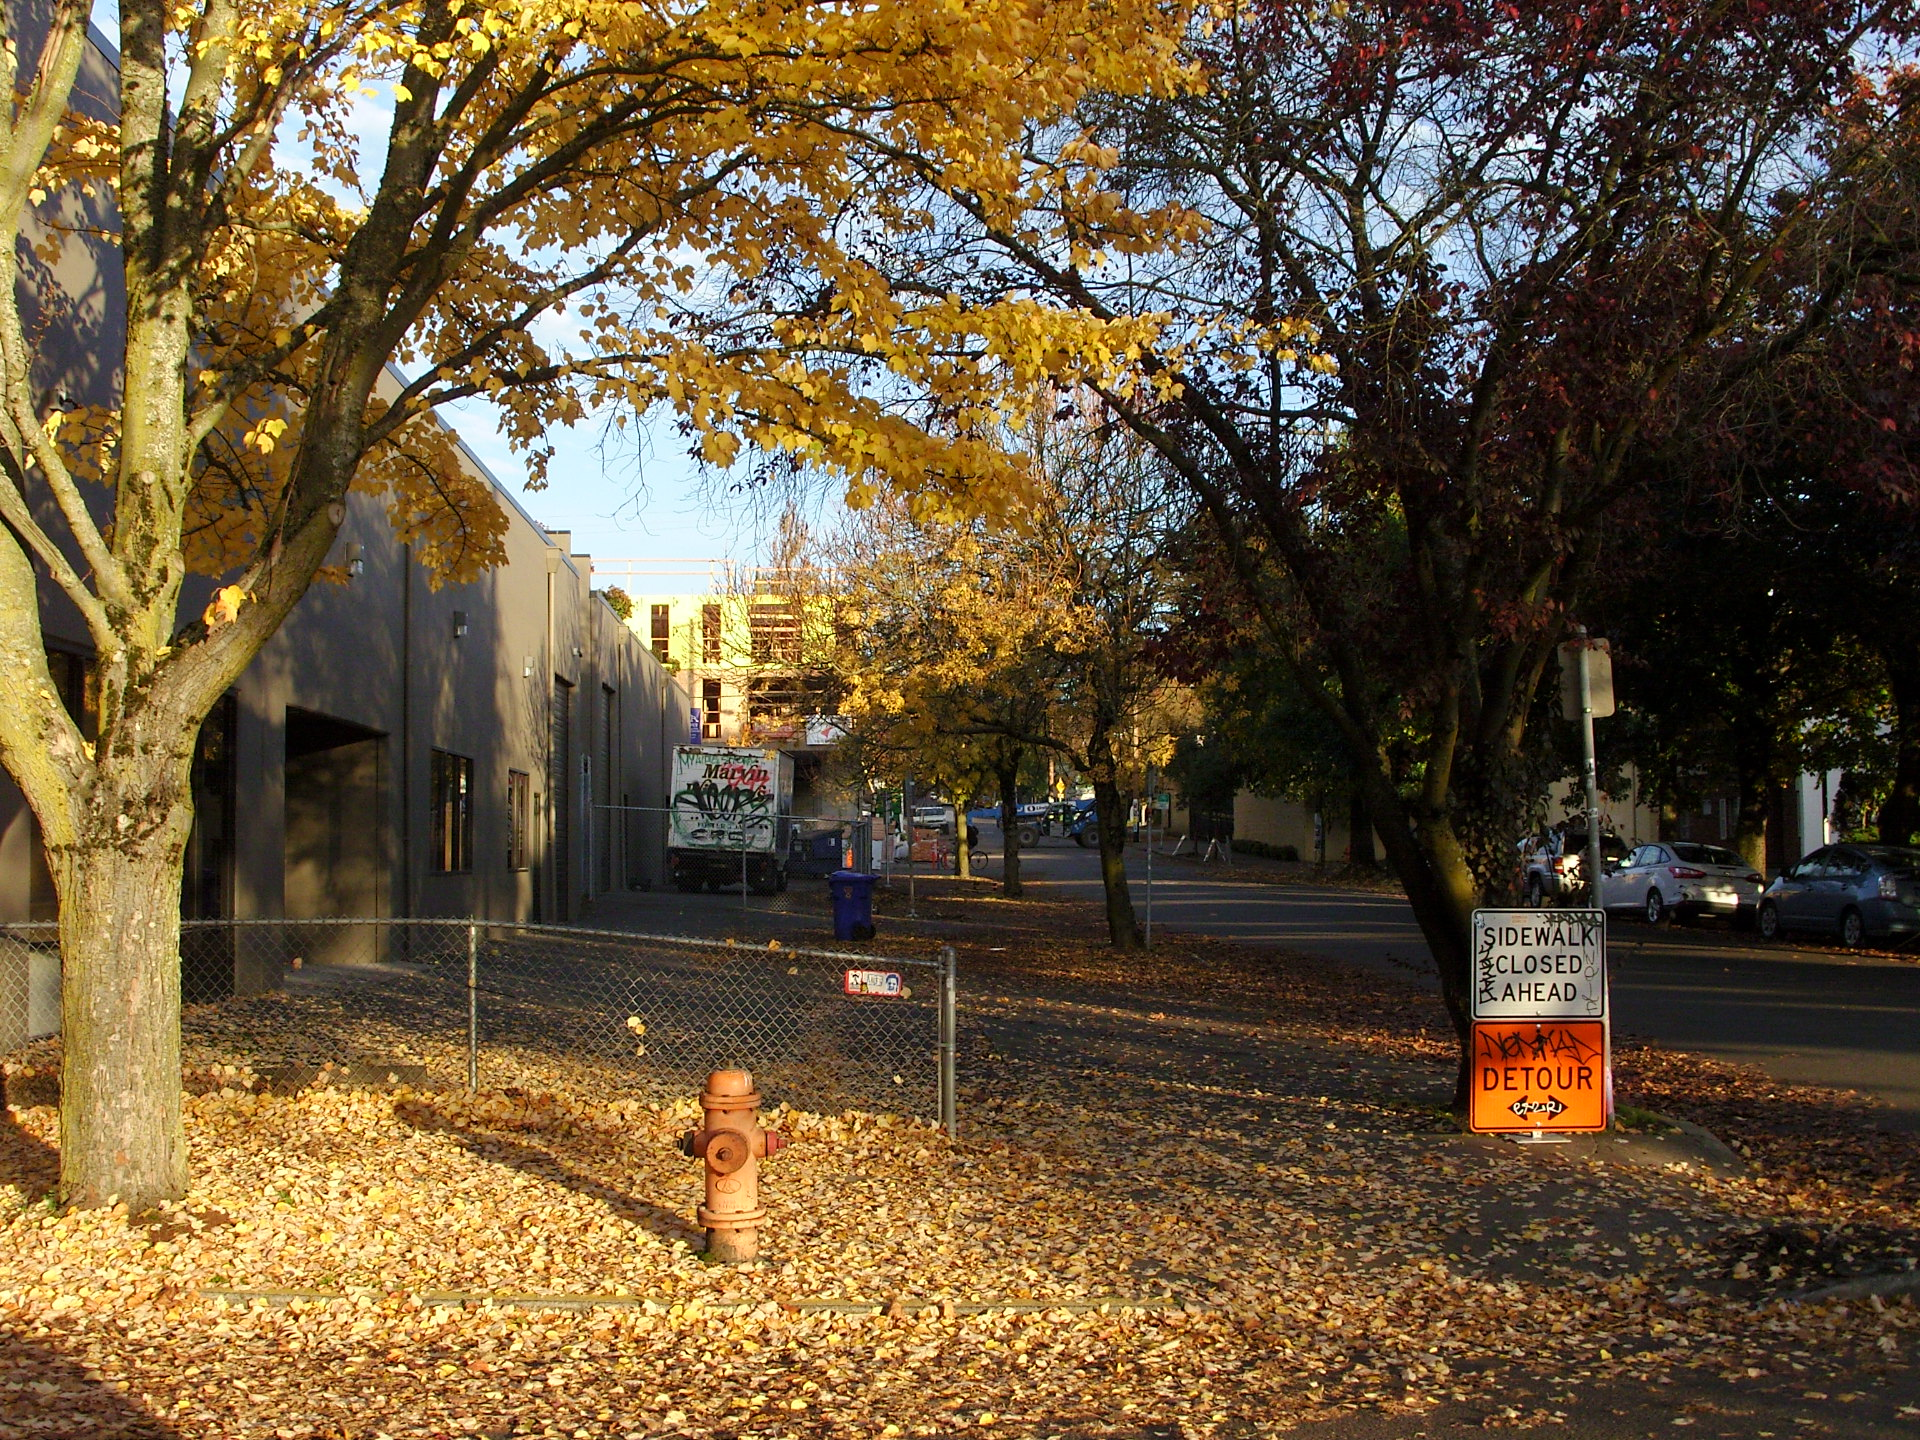 …like I said, those leaves were changing all over Oregon and closing sidewalks as they fall to the ground.